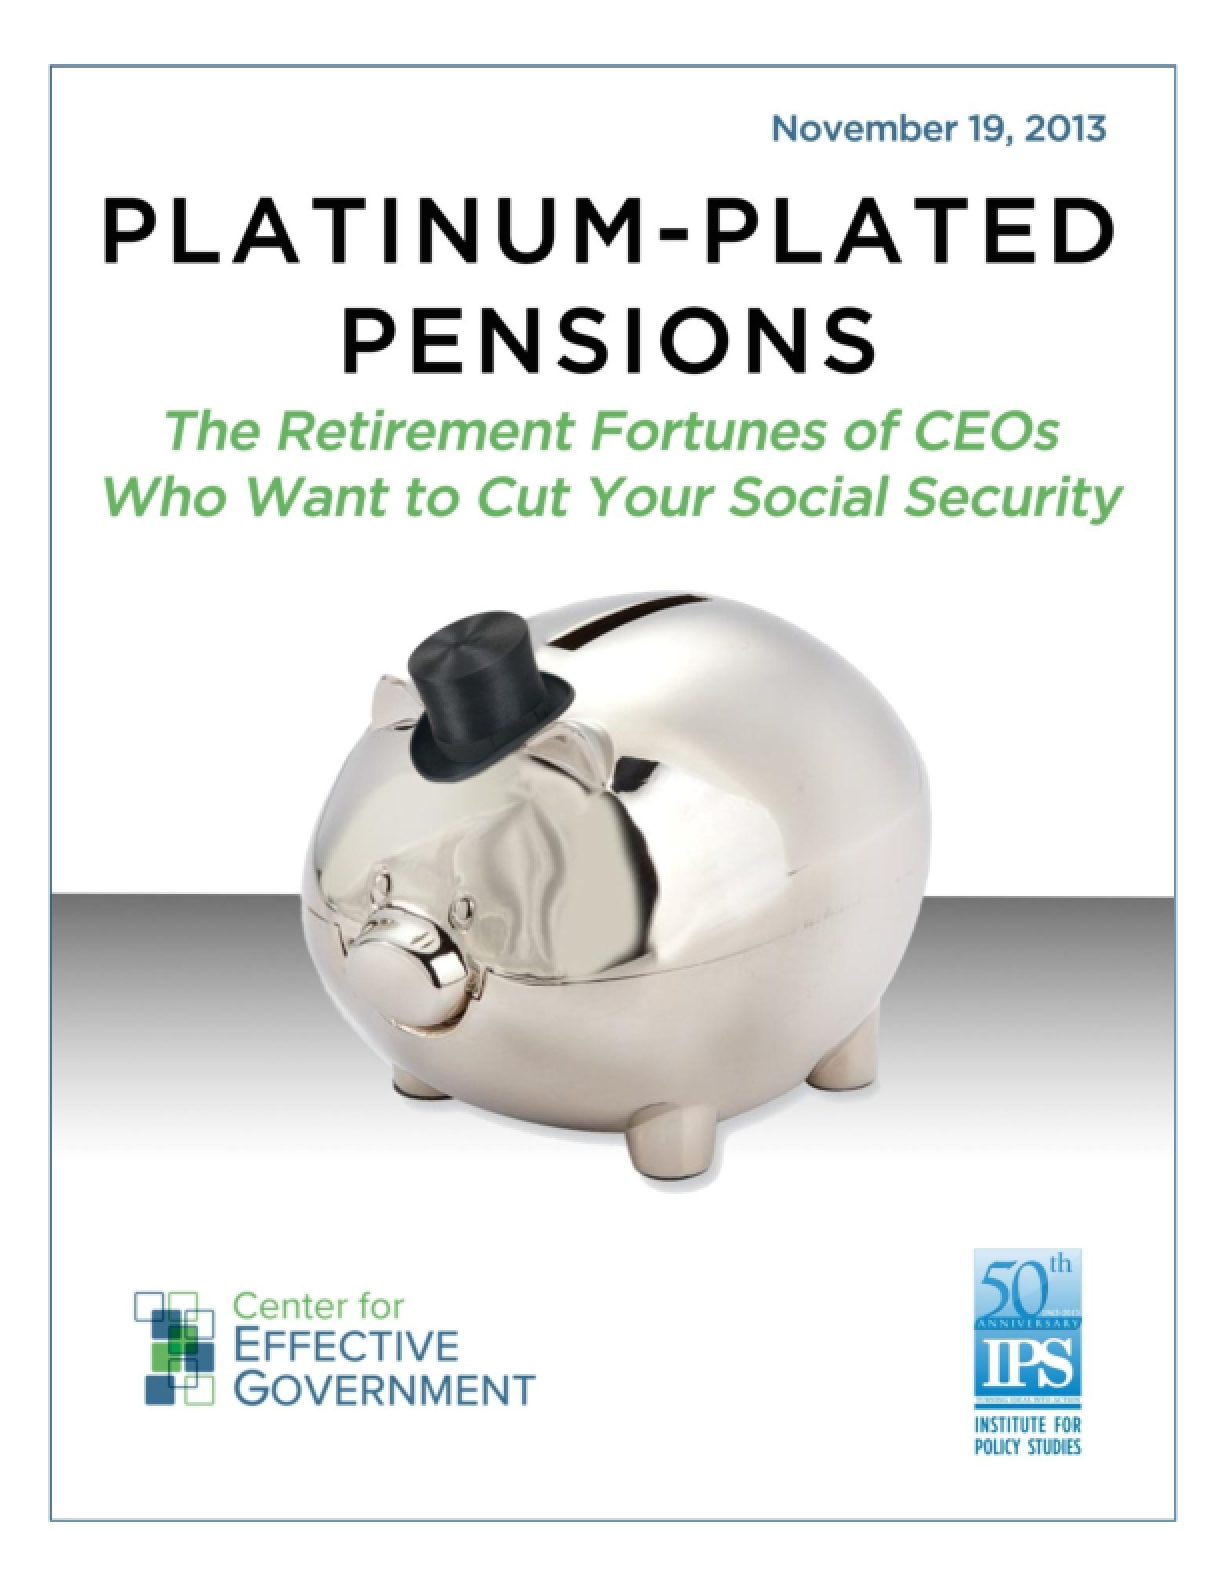 Platinum-Plated Pensions: The Retirement Fortunes of CEOs Who Want to Cut Your Social Security